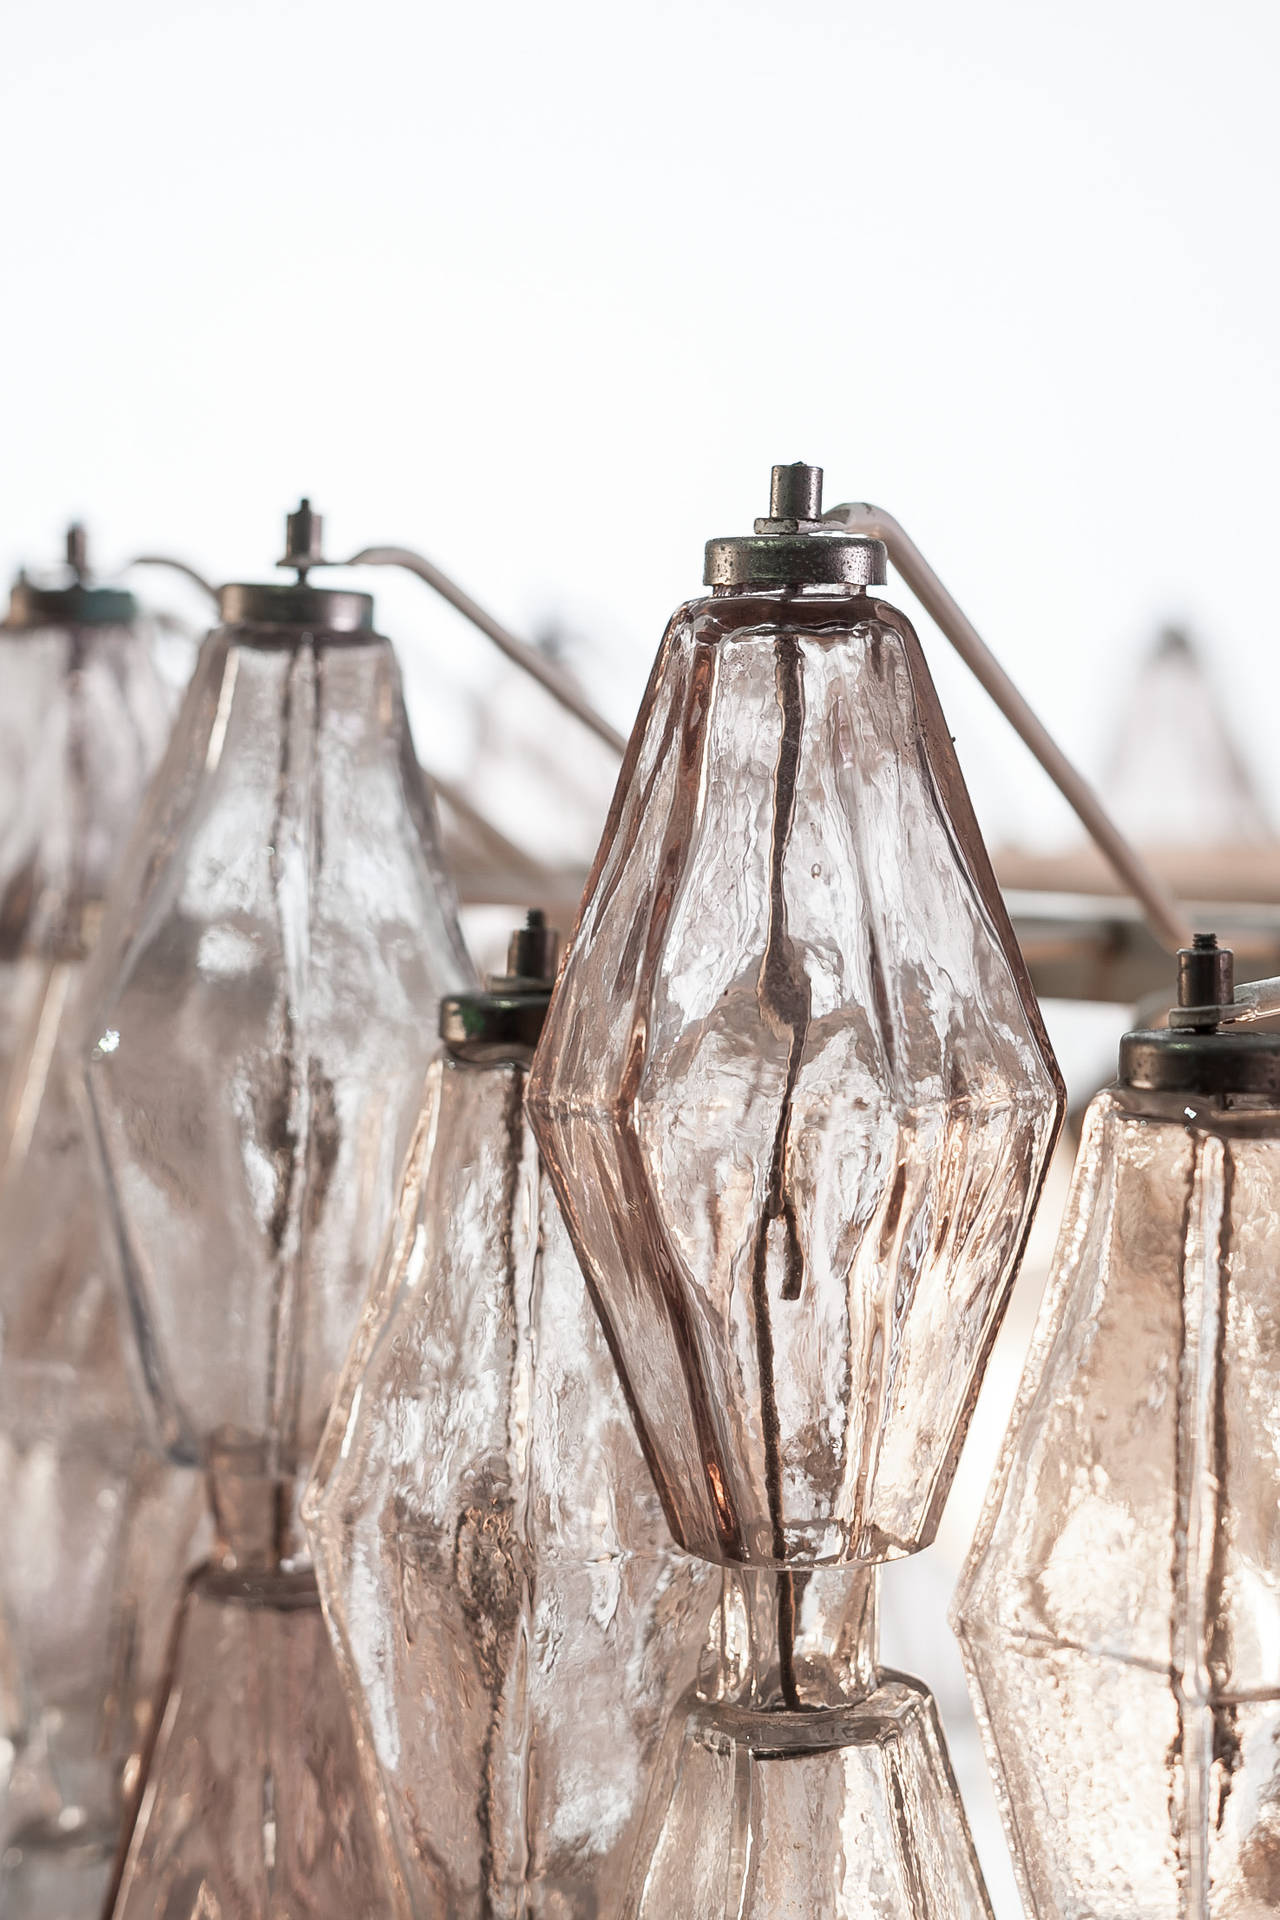 Italian Pair of Carlo Scarpa Extra Large 245 Murano Glass Pieces 'Poliedri' Chandeliers For Sale